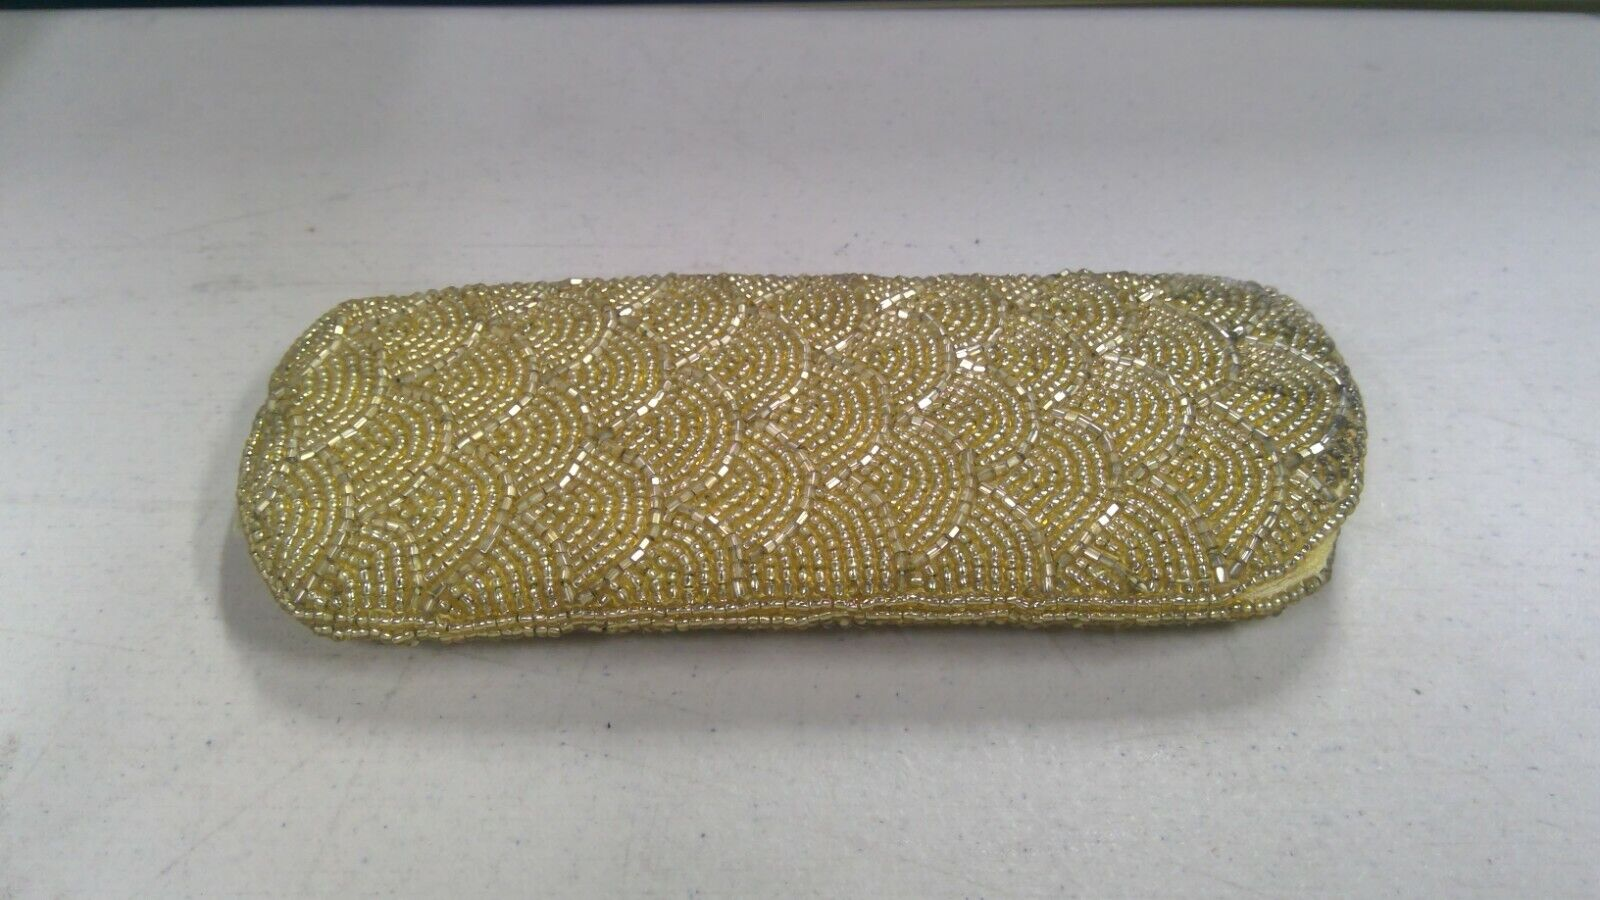 Authentic - Unbranded / Gold Sequin Style Sunglasses / Glasses Case